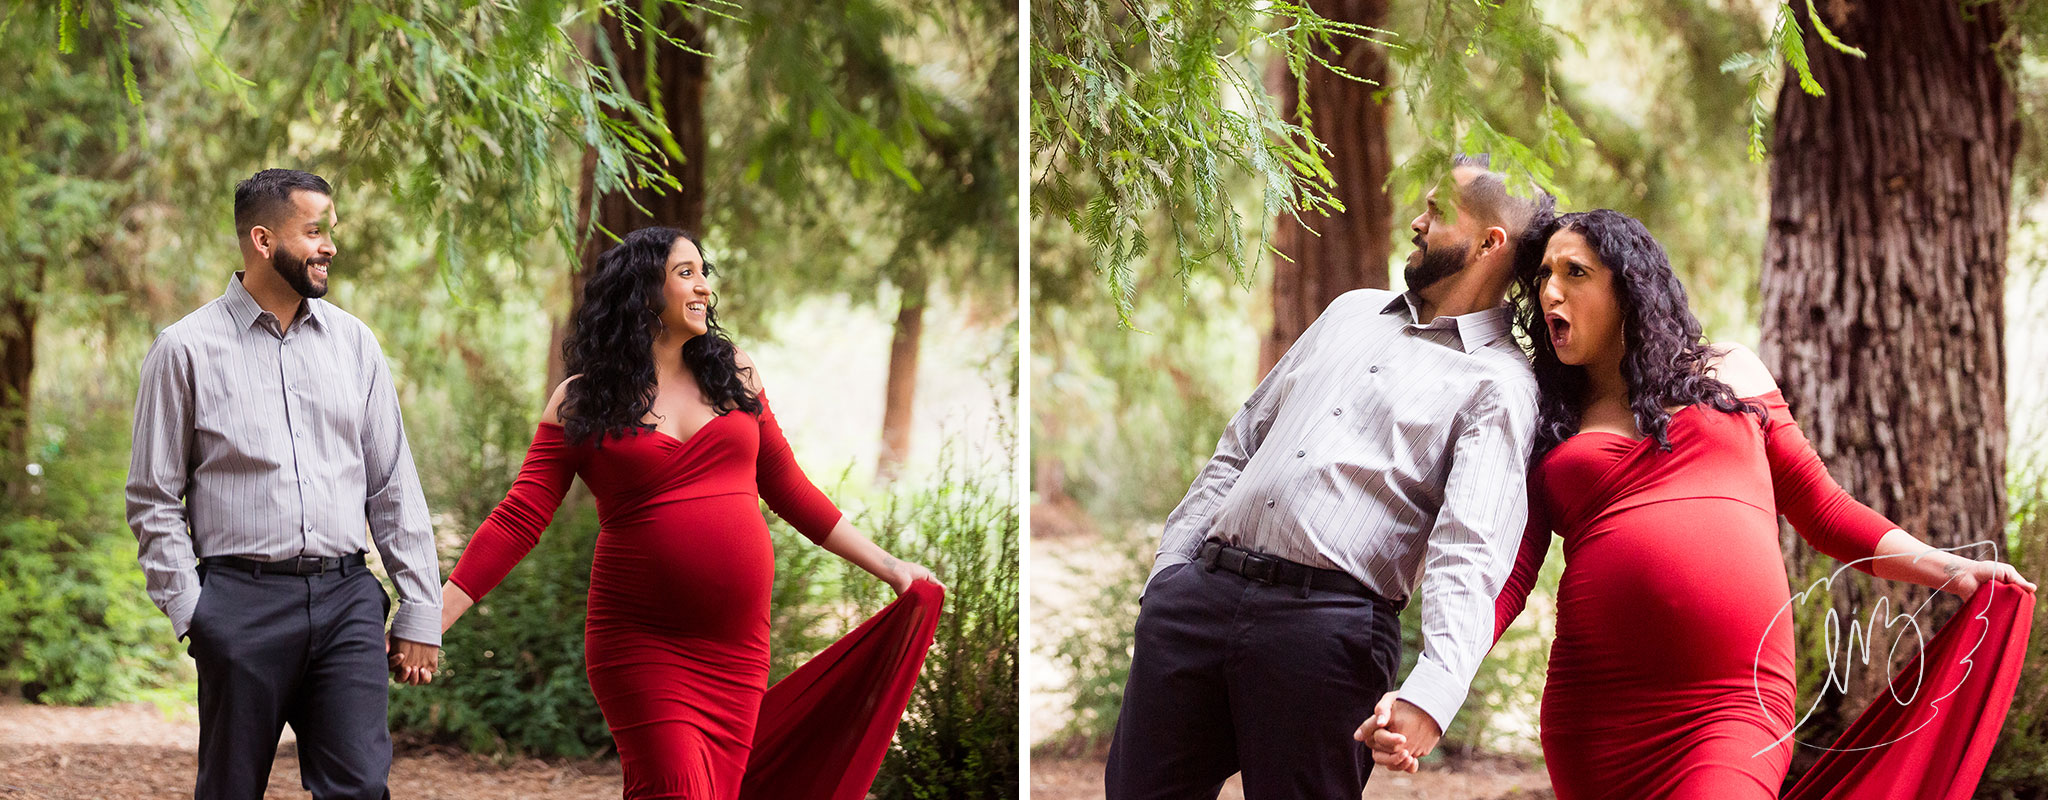 California_Inland_Empire_Maternity_Photographer_06.jpg